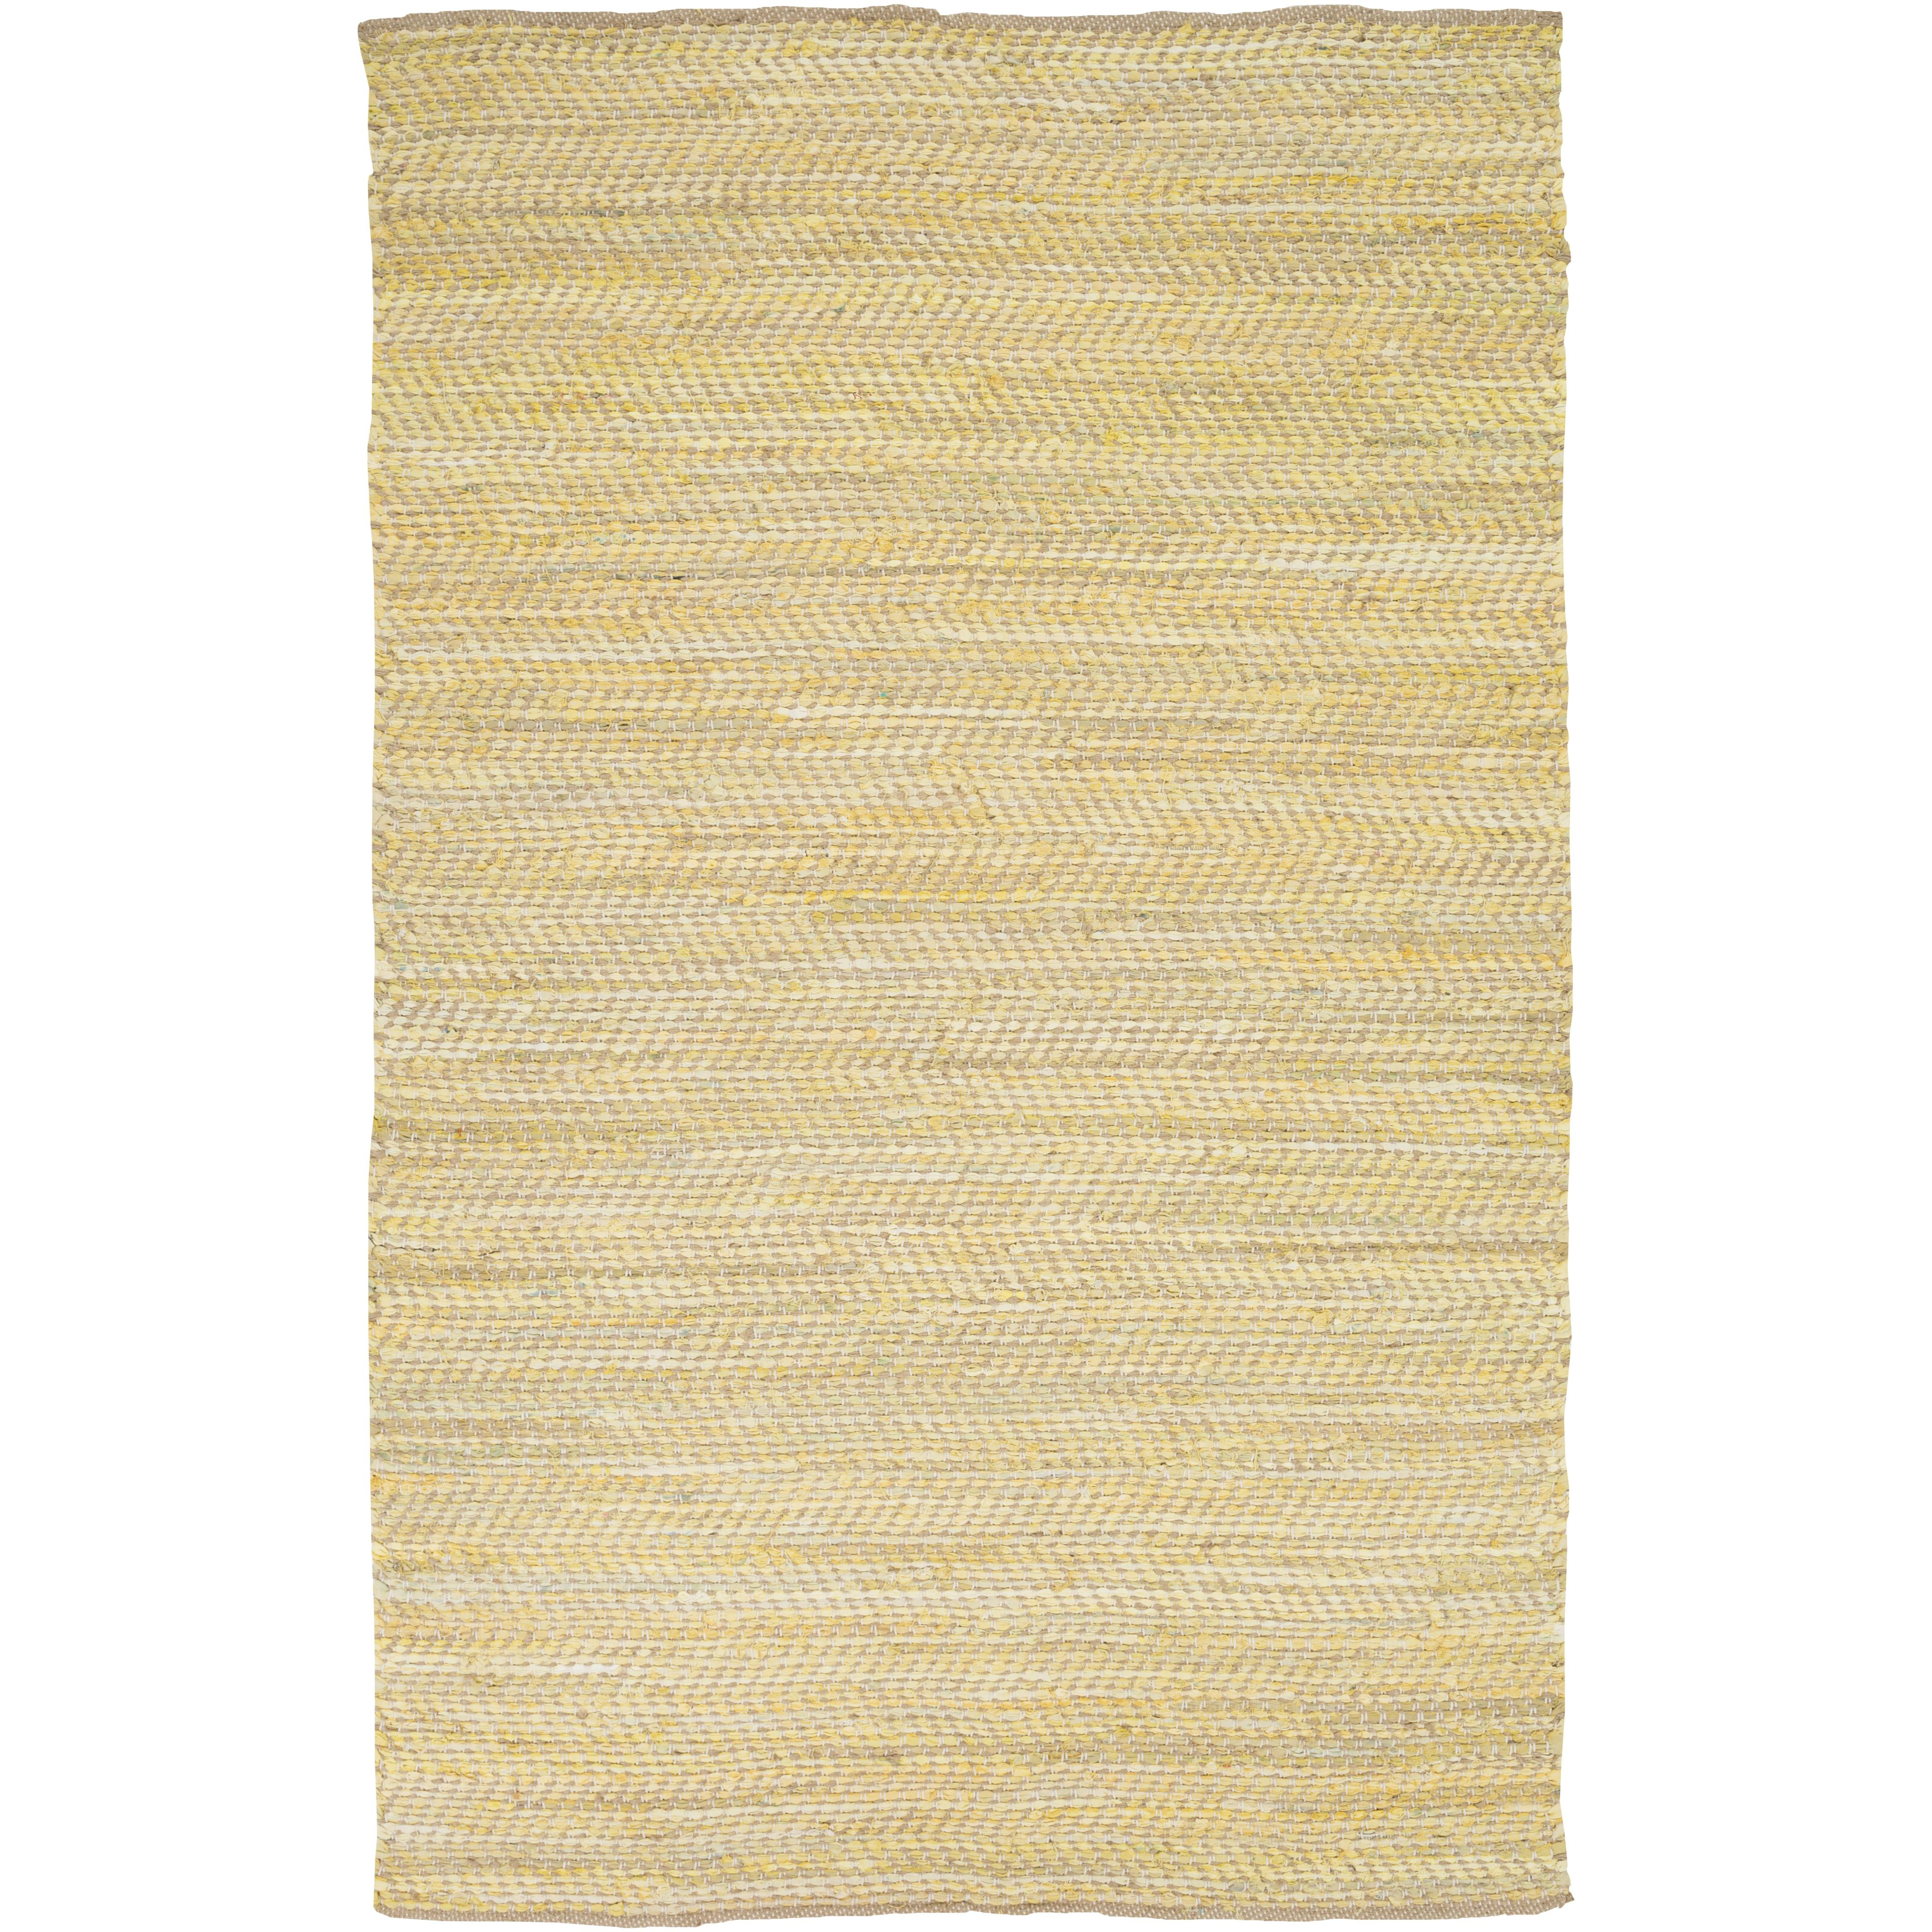 Surya Rugs Fanore 2' x 3' - Item Number: FAN3007-23